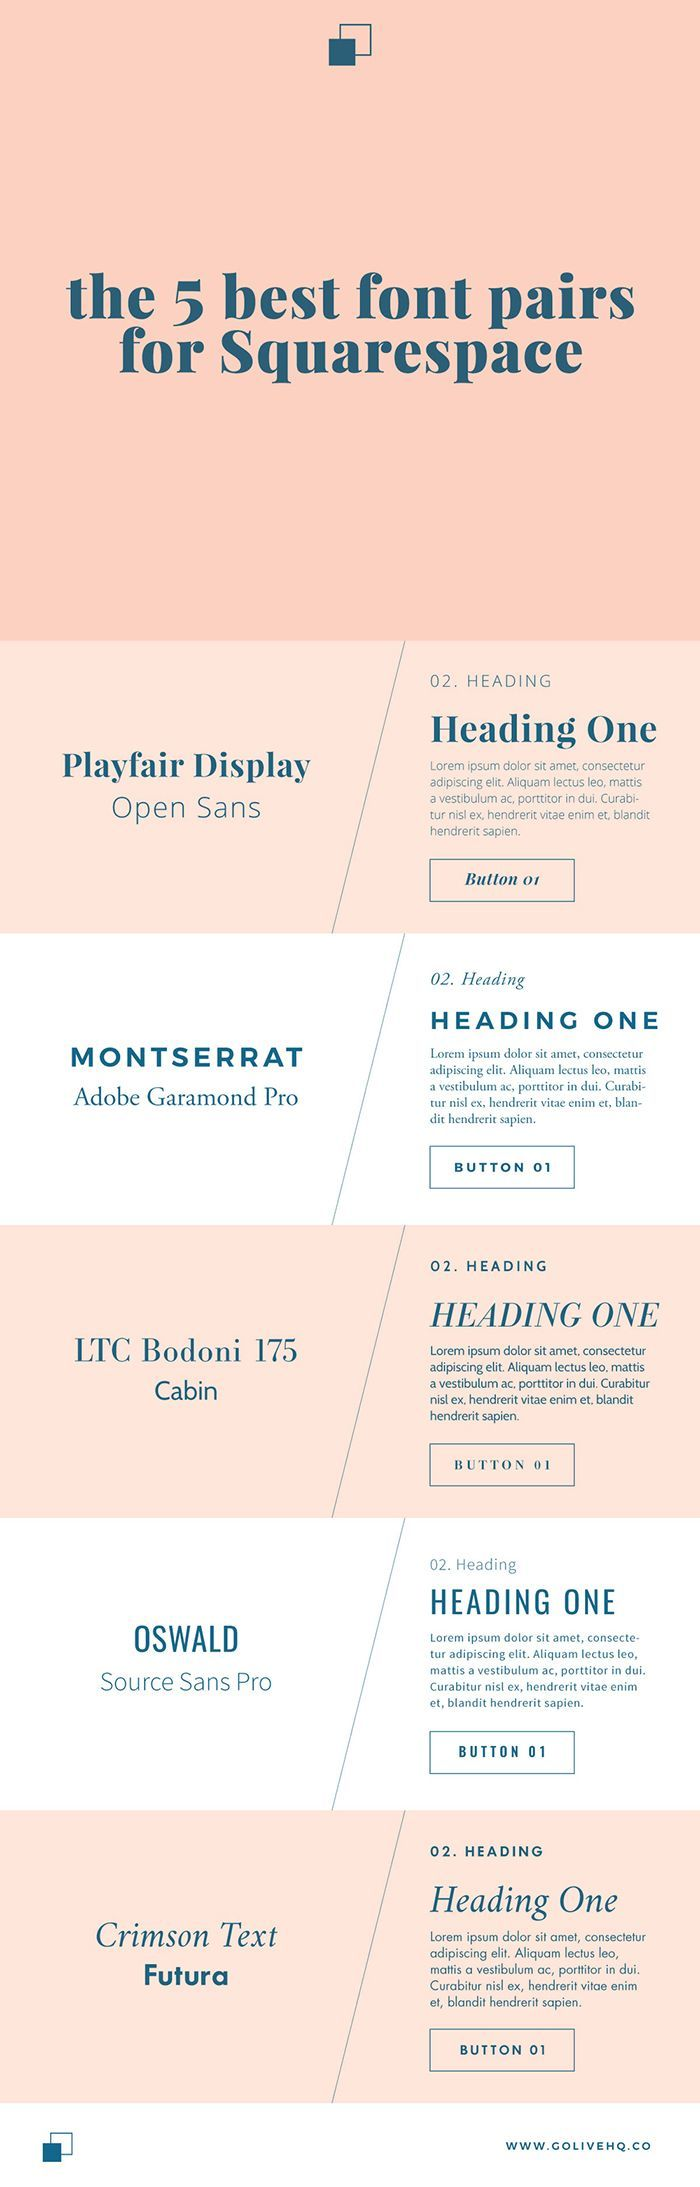 "5 best font pairs for Squarespace by <a href=""http://www.golivehq.co"" rel=""nofollow"" target=""_blank"">golivehq.co</a>"